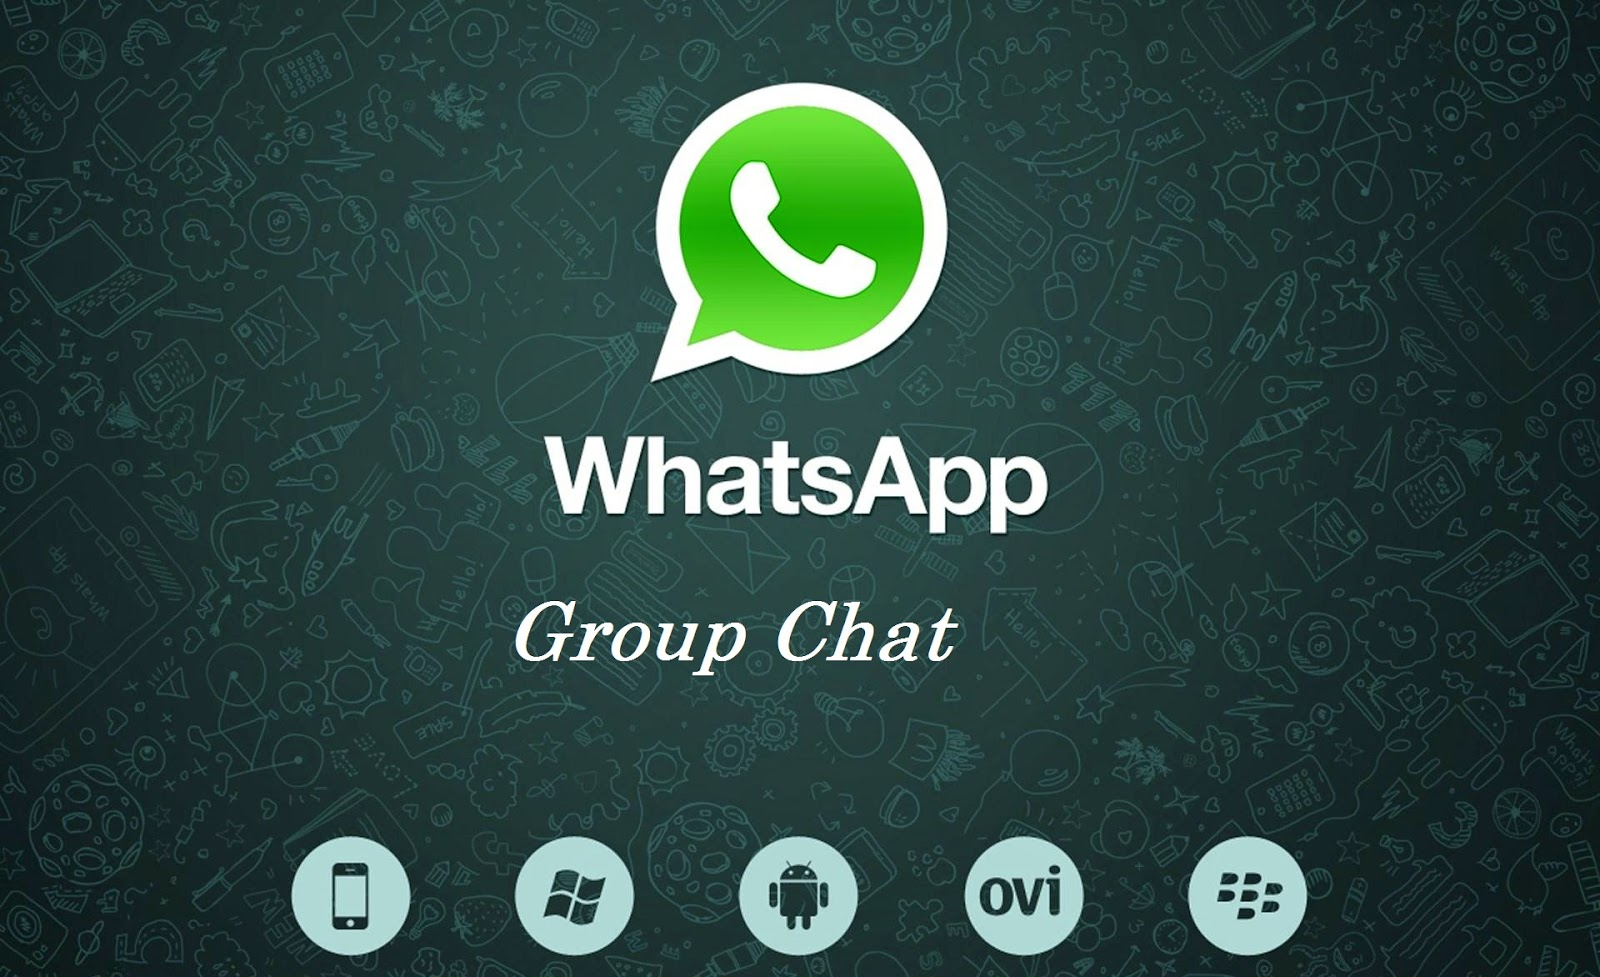 Find Contact Information of Group Participant on Whatsapp